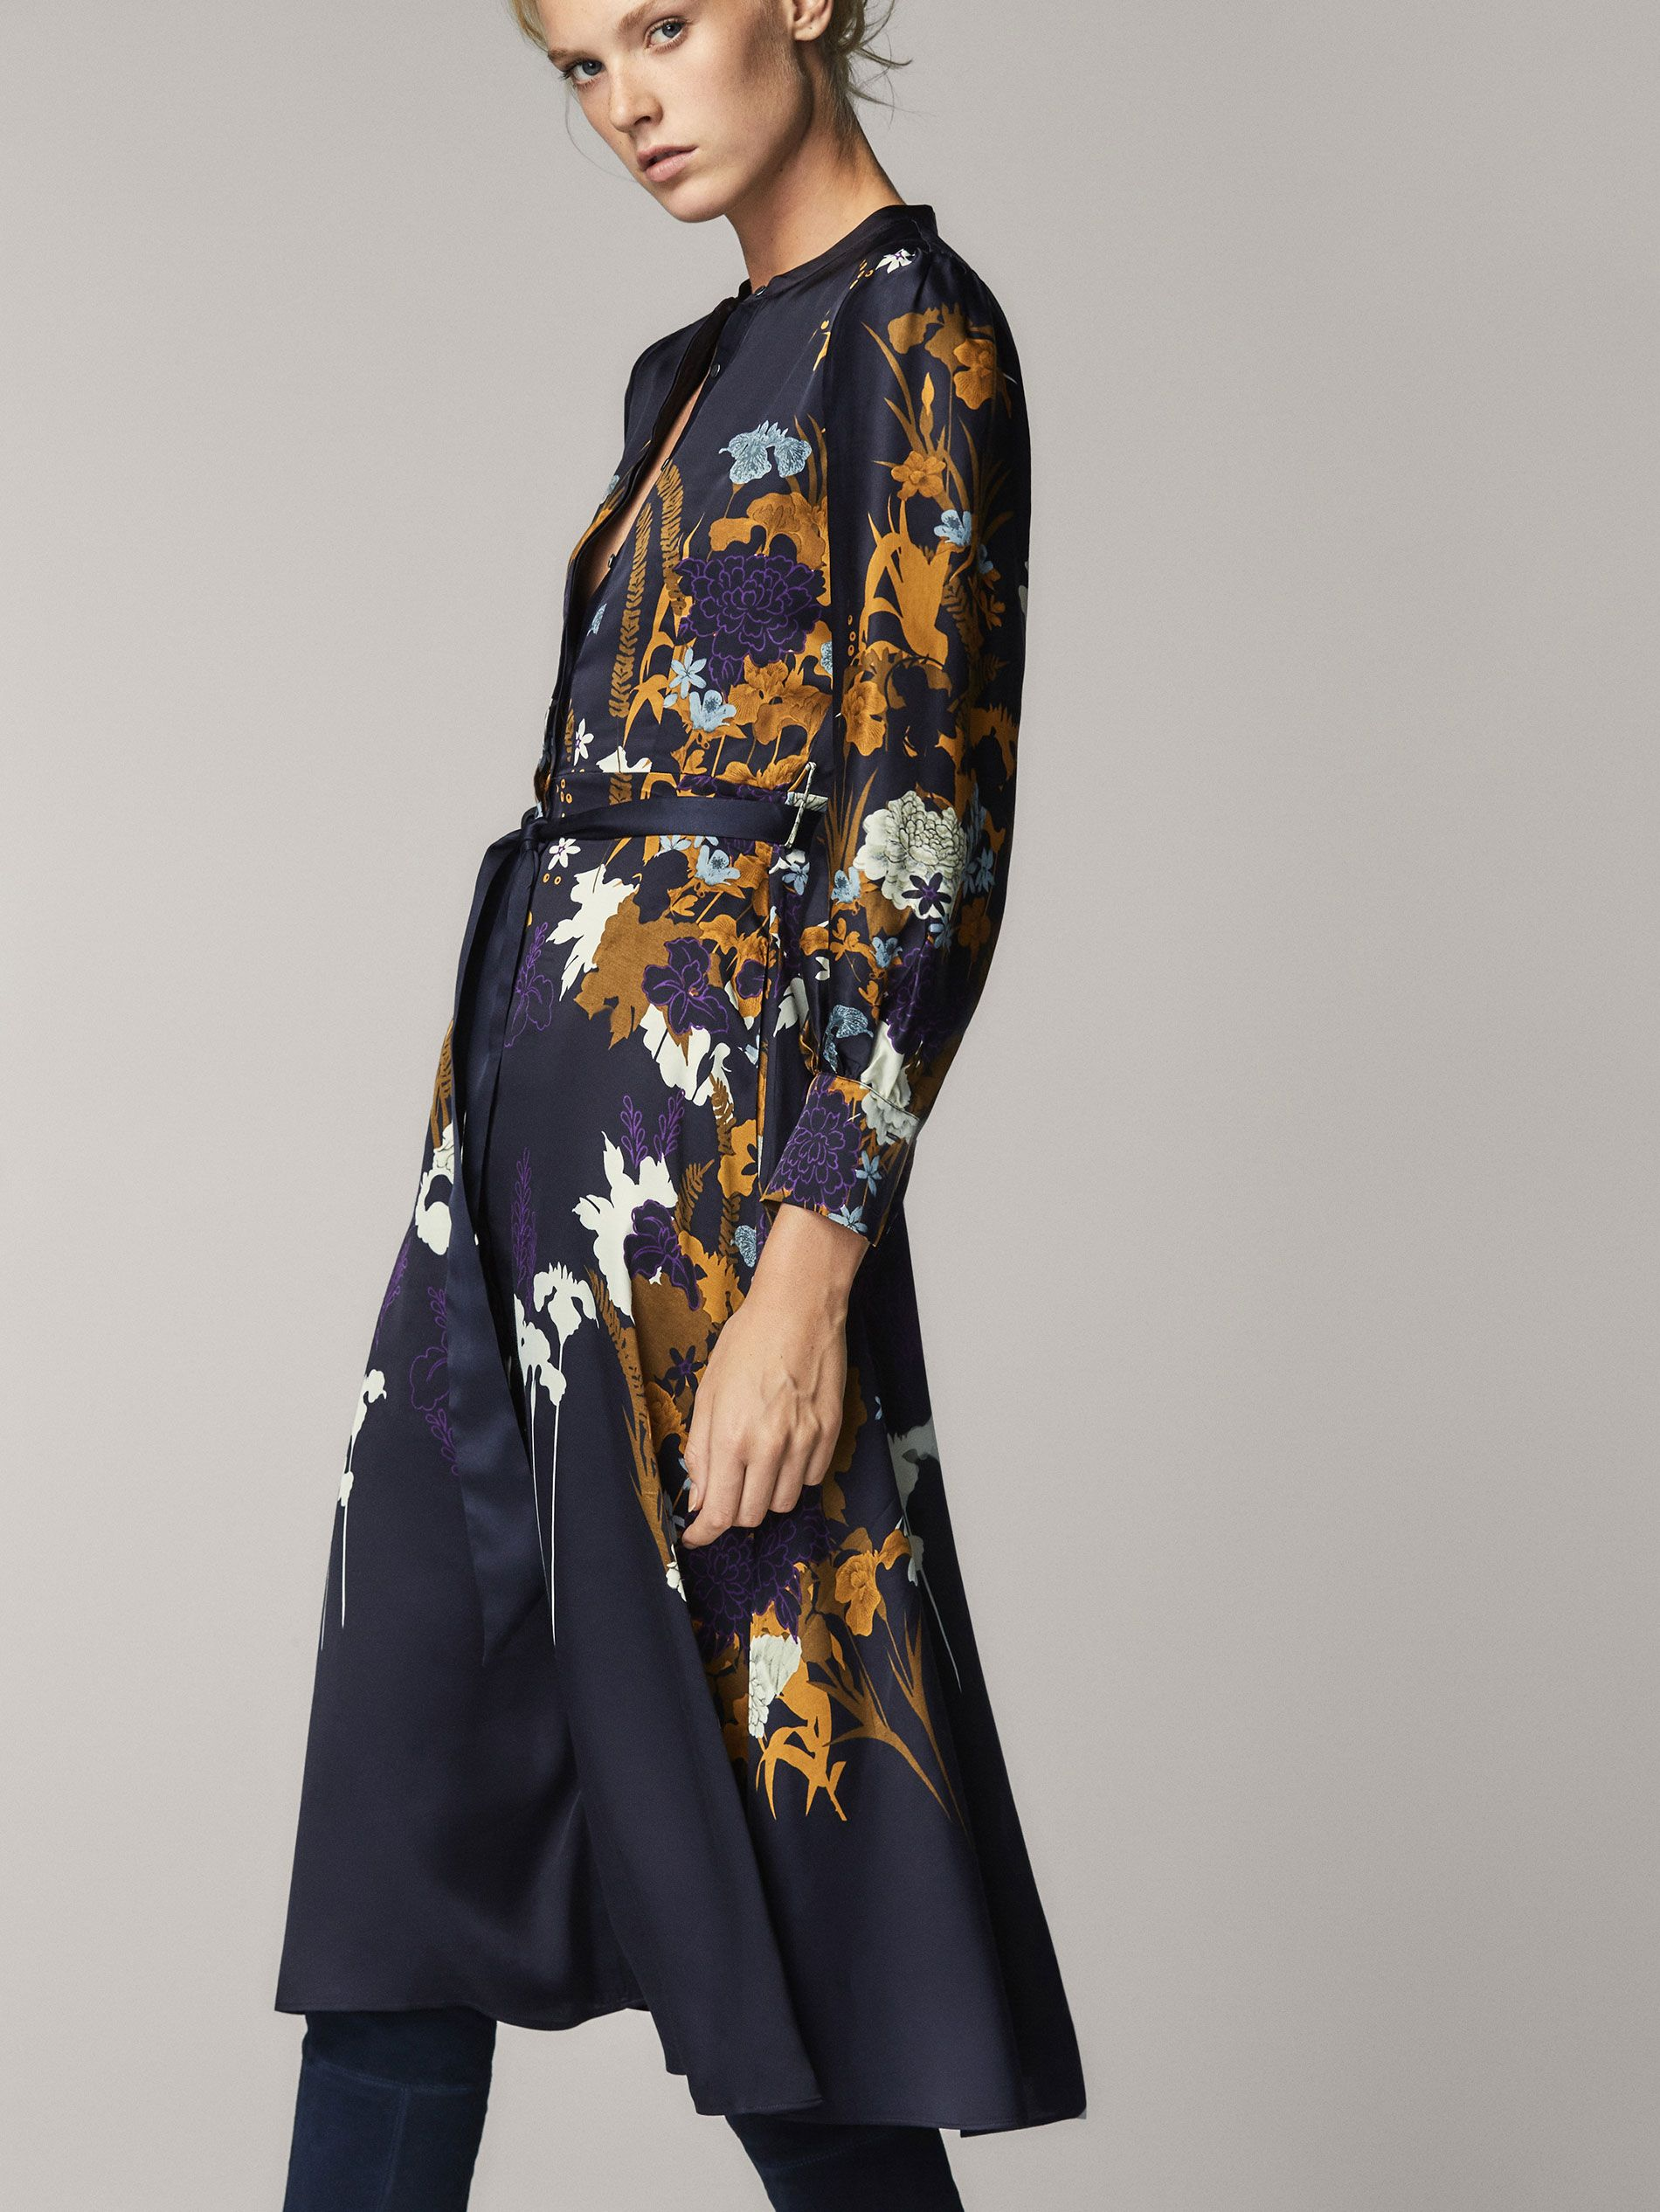 82a2a23b0f1 FLORAL PRINT SATIN DRESS WITH TIED DETAIL at Massimo Dutti